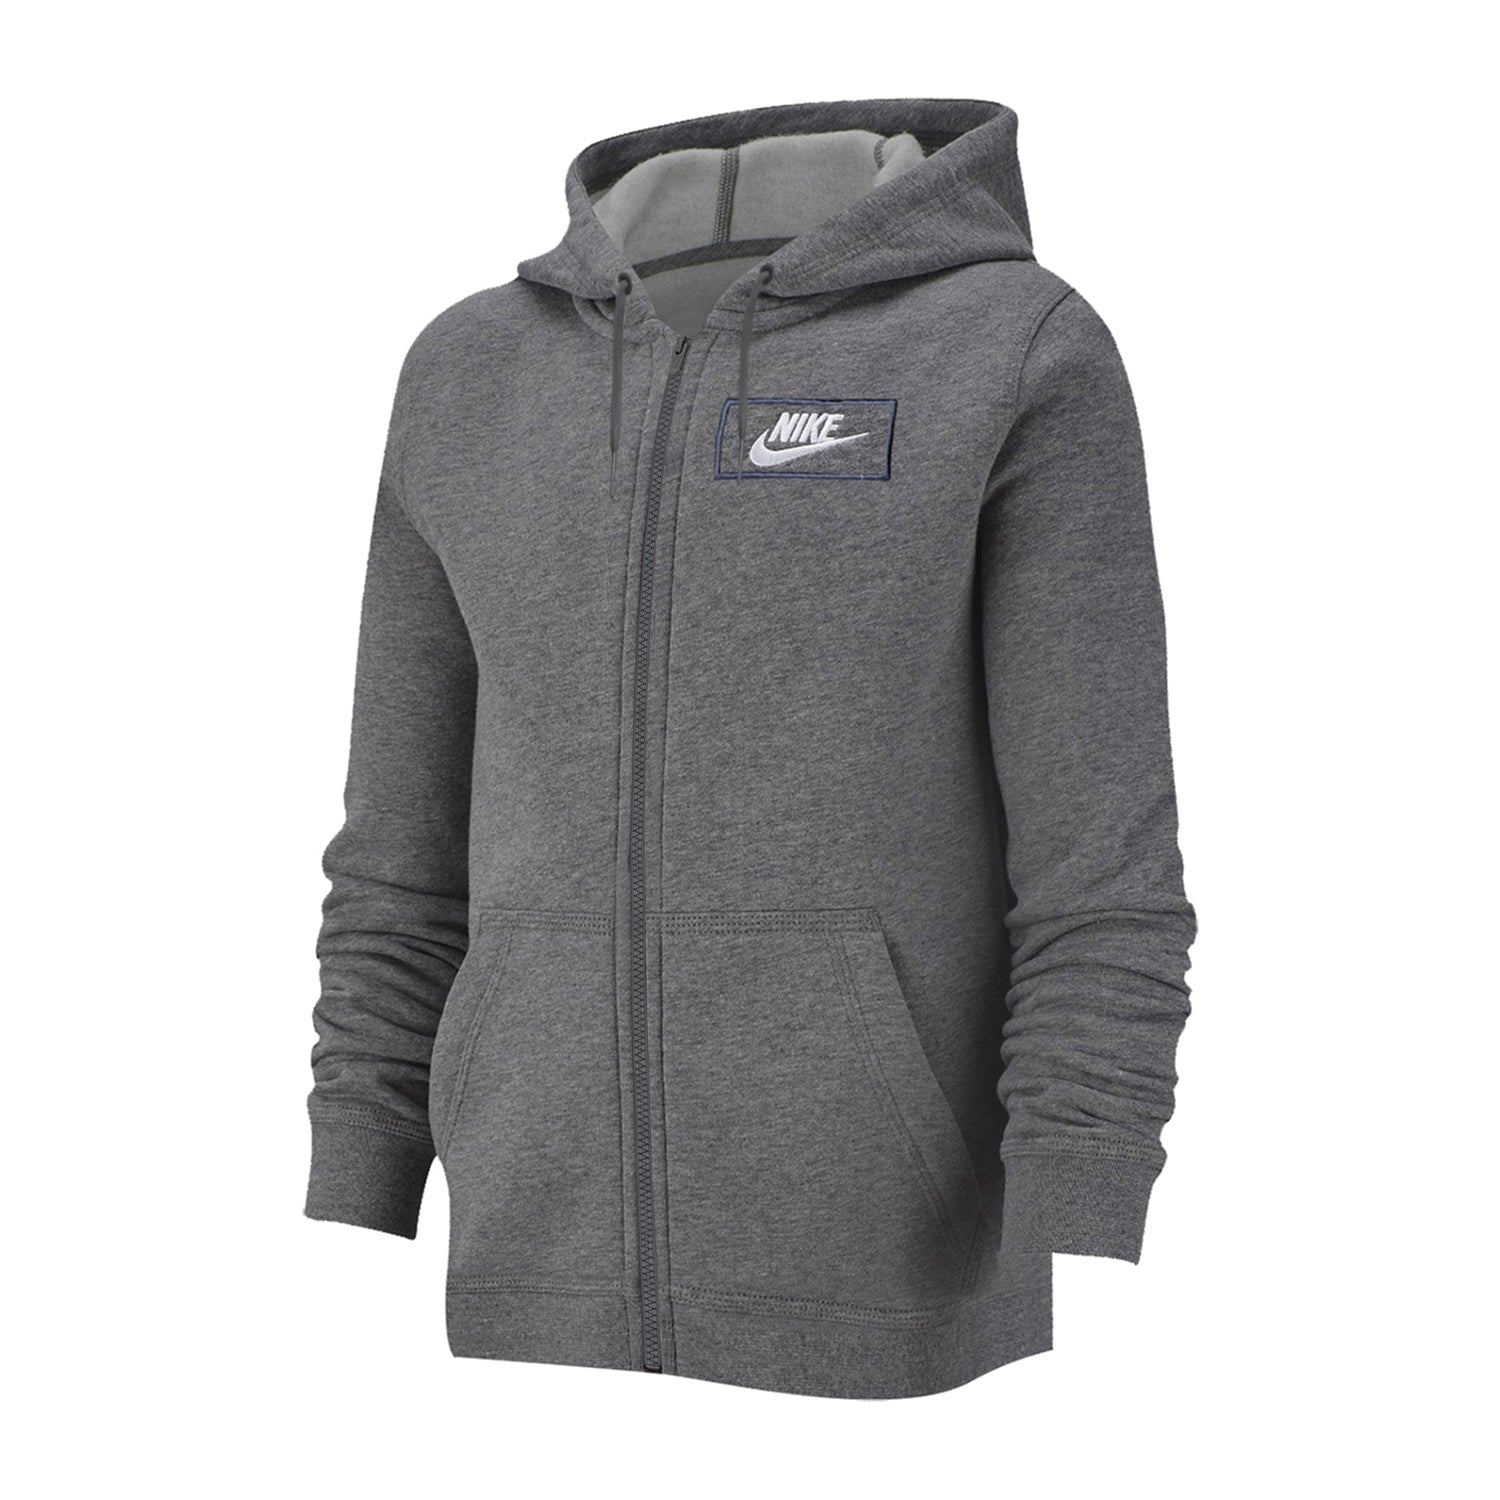 NK Fleece Zipper Hoodie For Men-Charcoal Melange with White Embroidery-BE12988